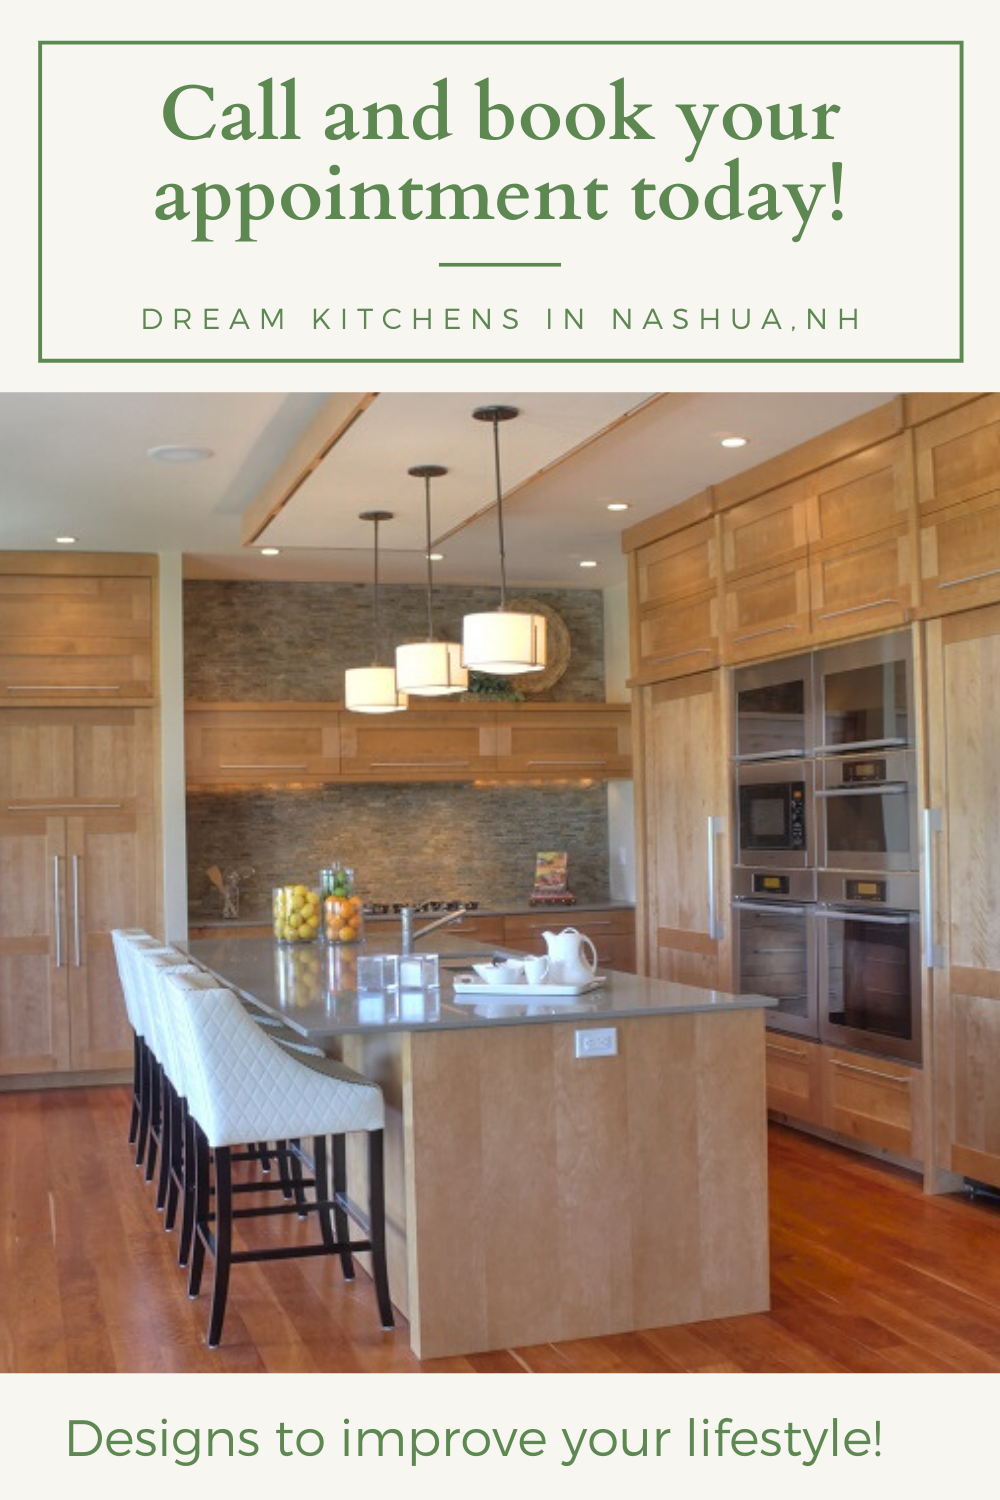 Book Your Appointment Today Dream Kitchens In Nashua Nh In 2020 Kitchen Remodel Kitchen Remodel Design Kitchen And Bath Design